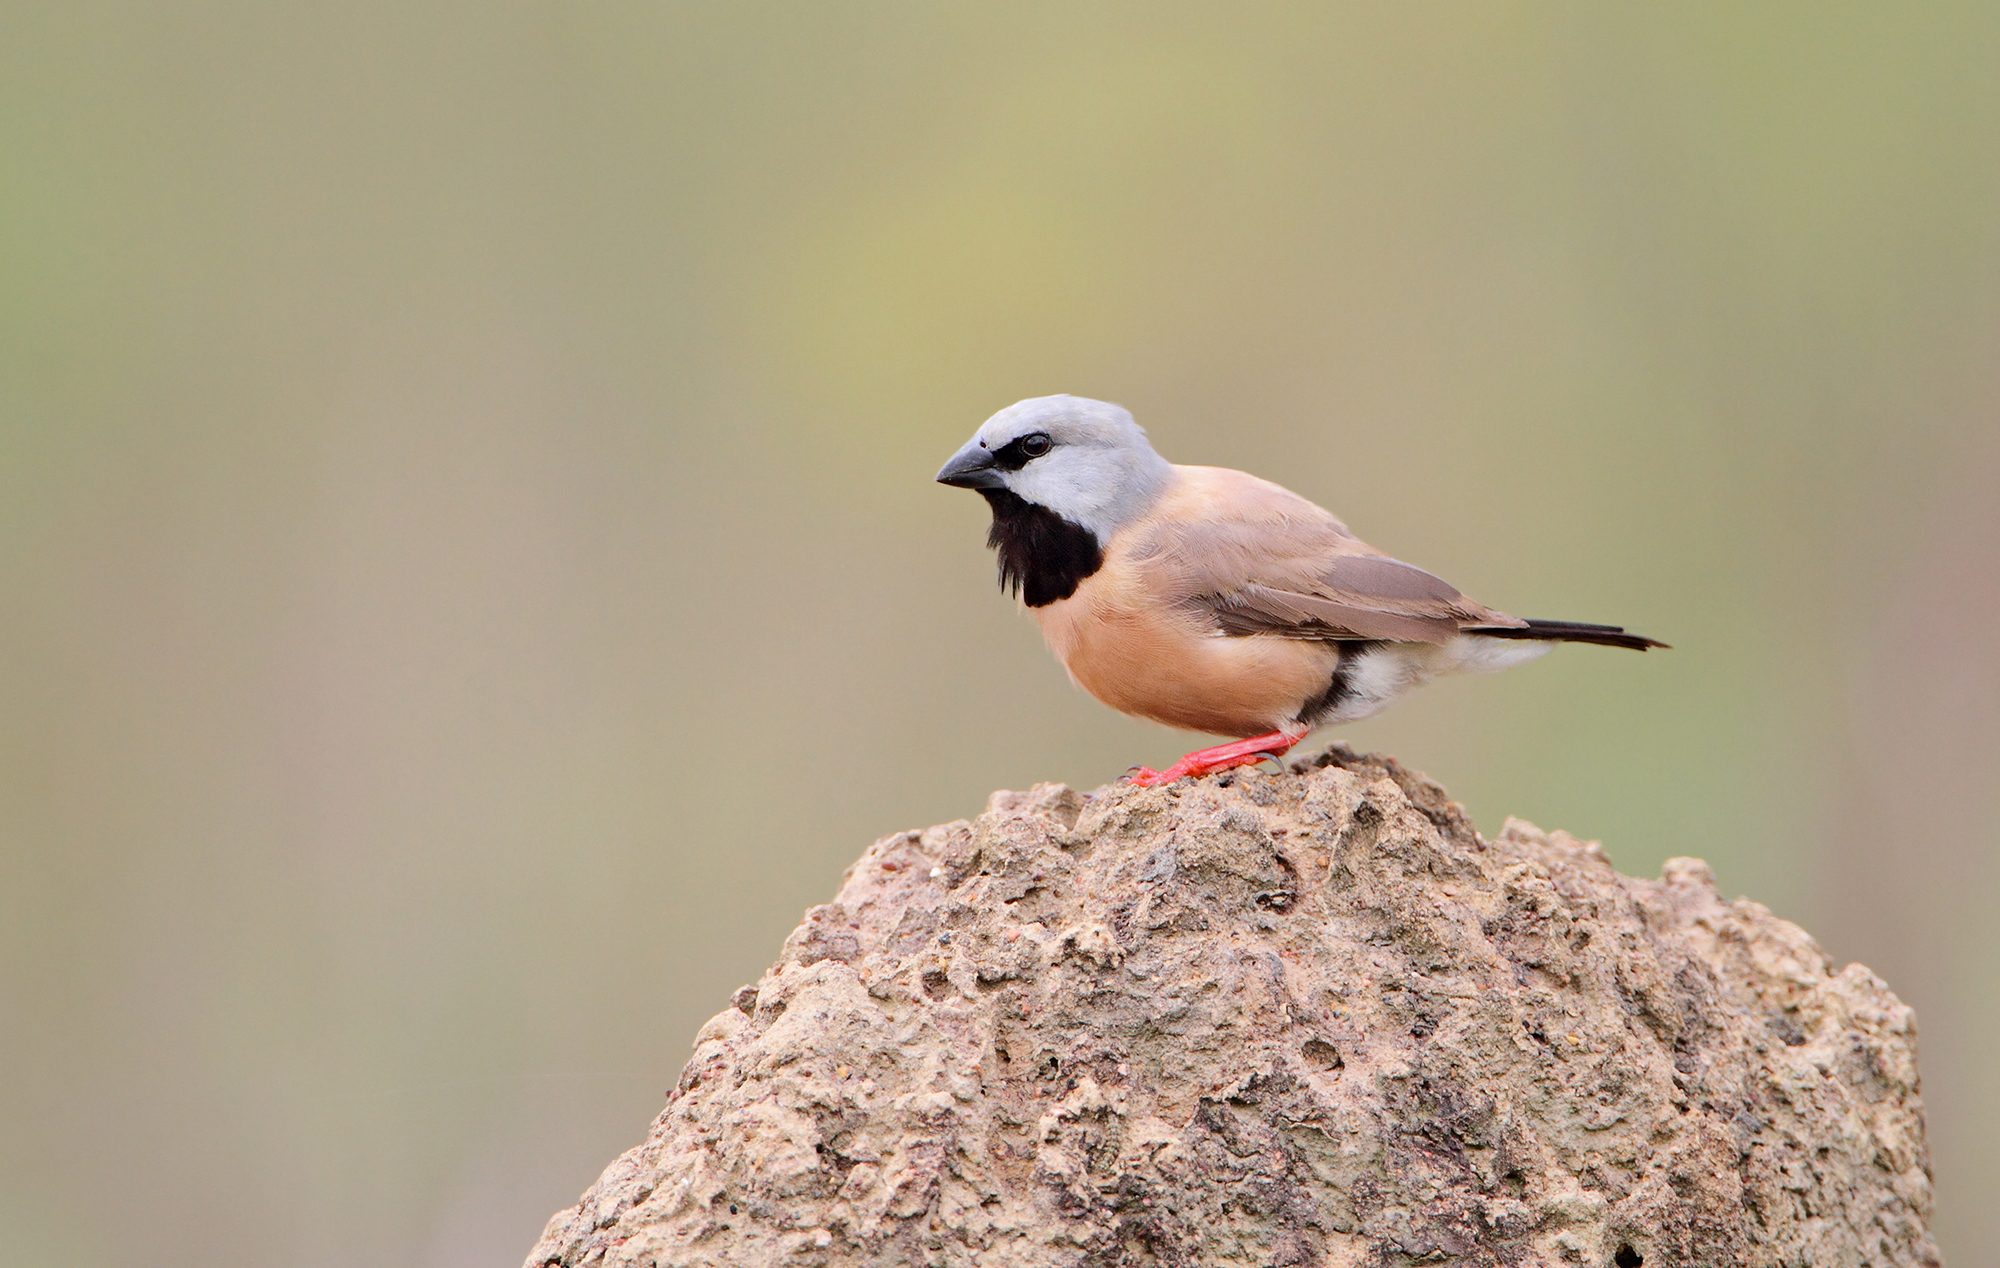 Black-throated Finch 2.jpeg